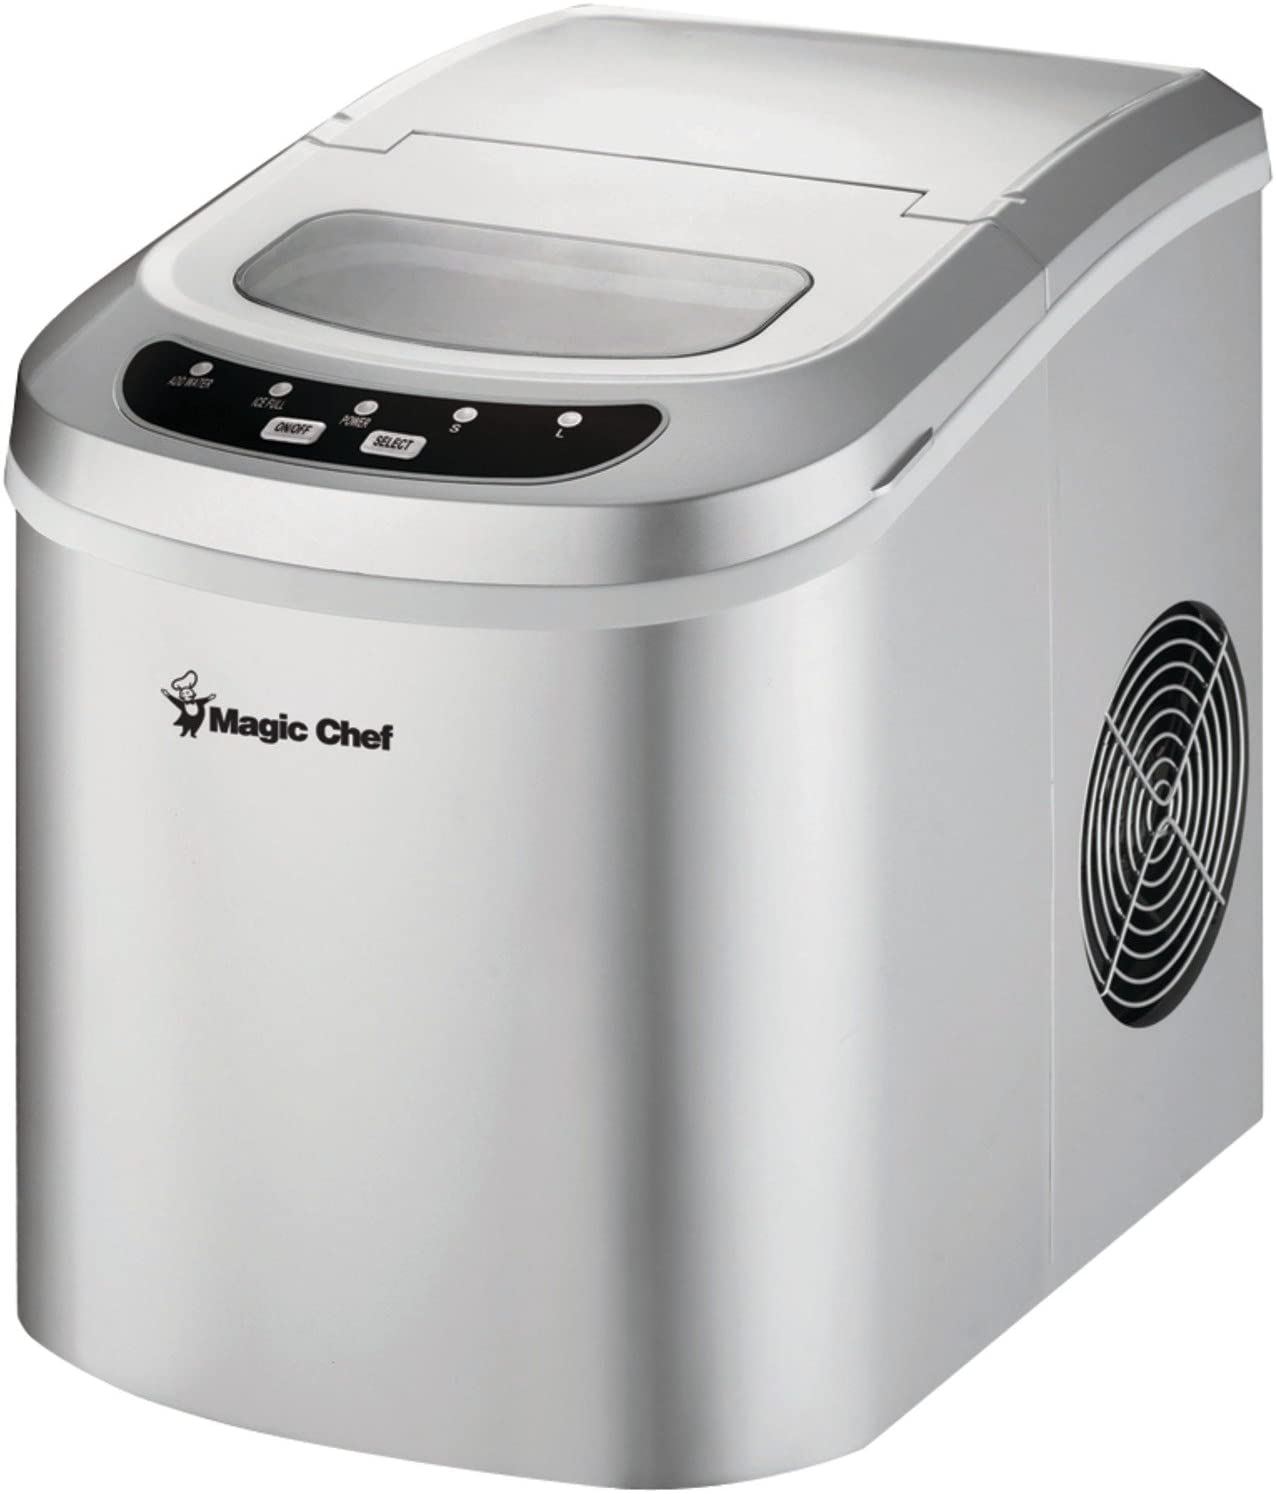 Magic Chef 27-Lb Portable Countertop Ice Maker Reviews 1